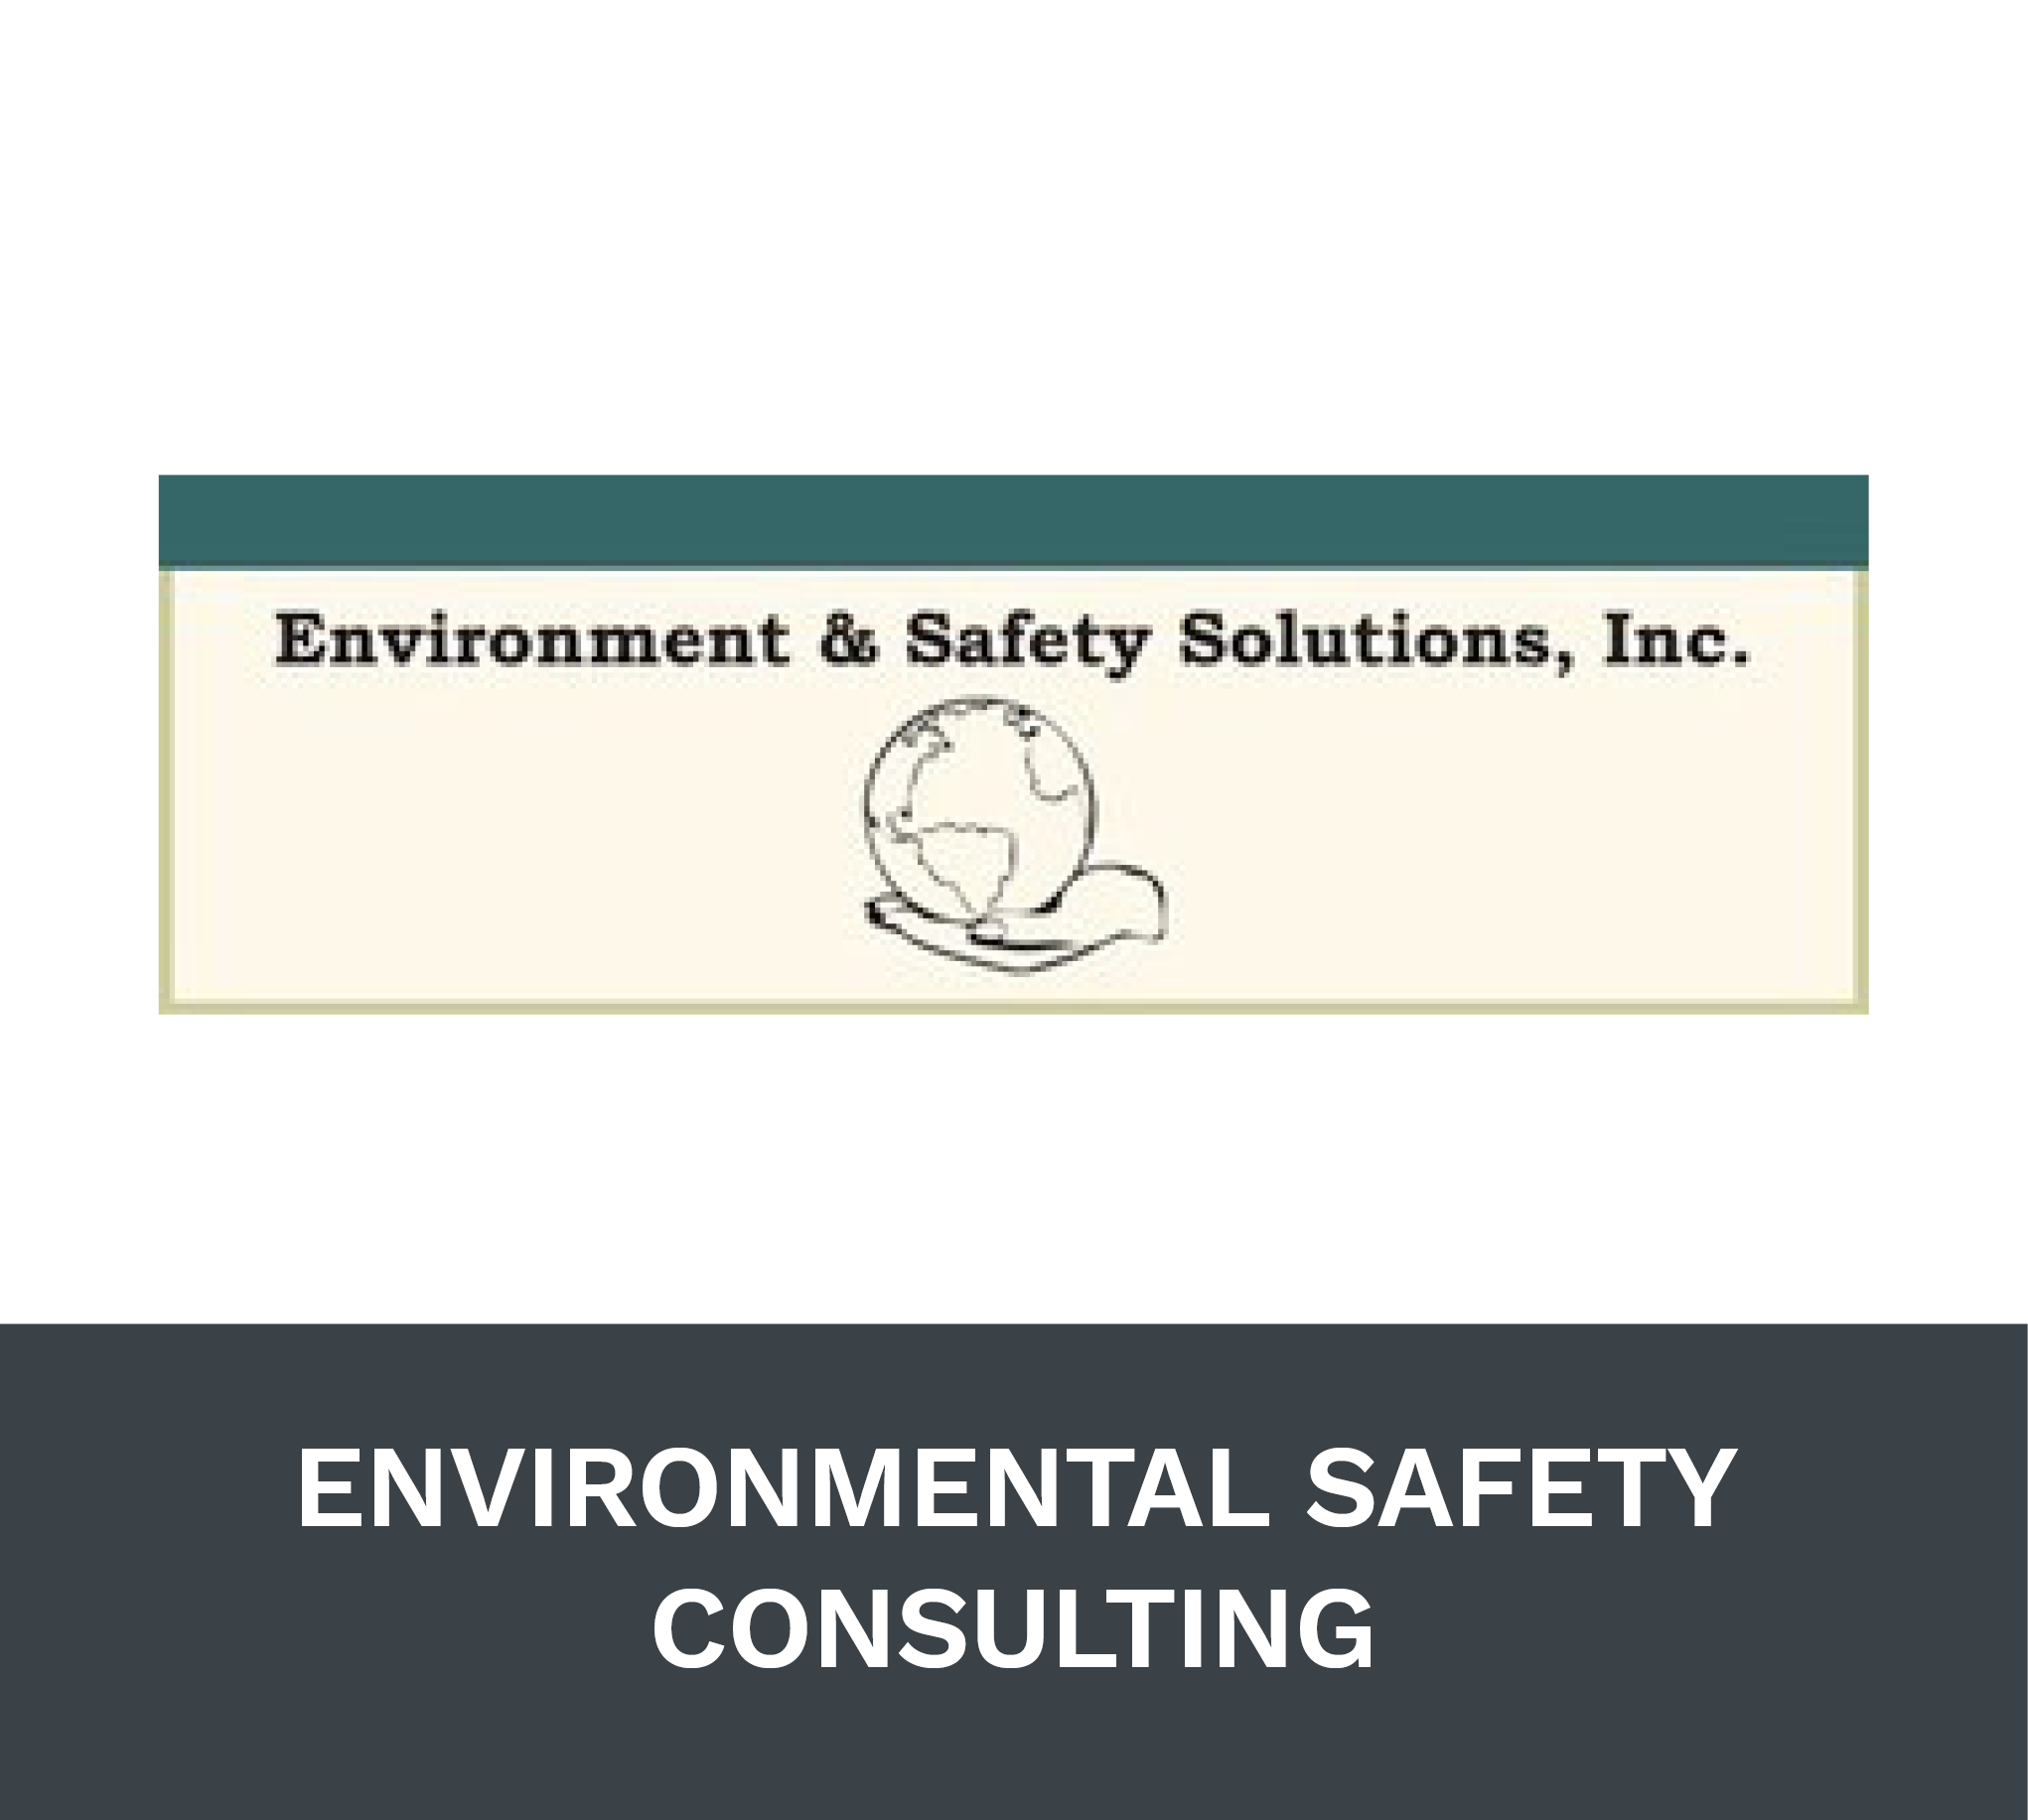 Environment Safety Consulting